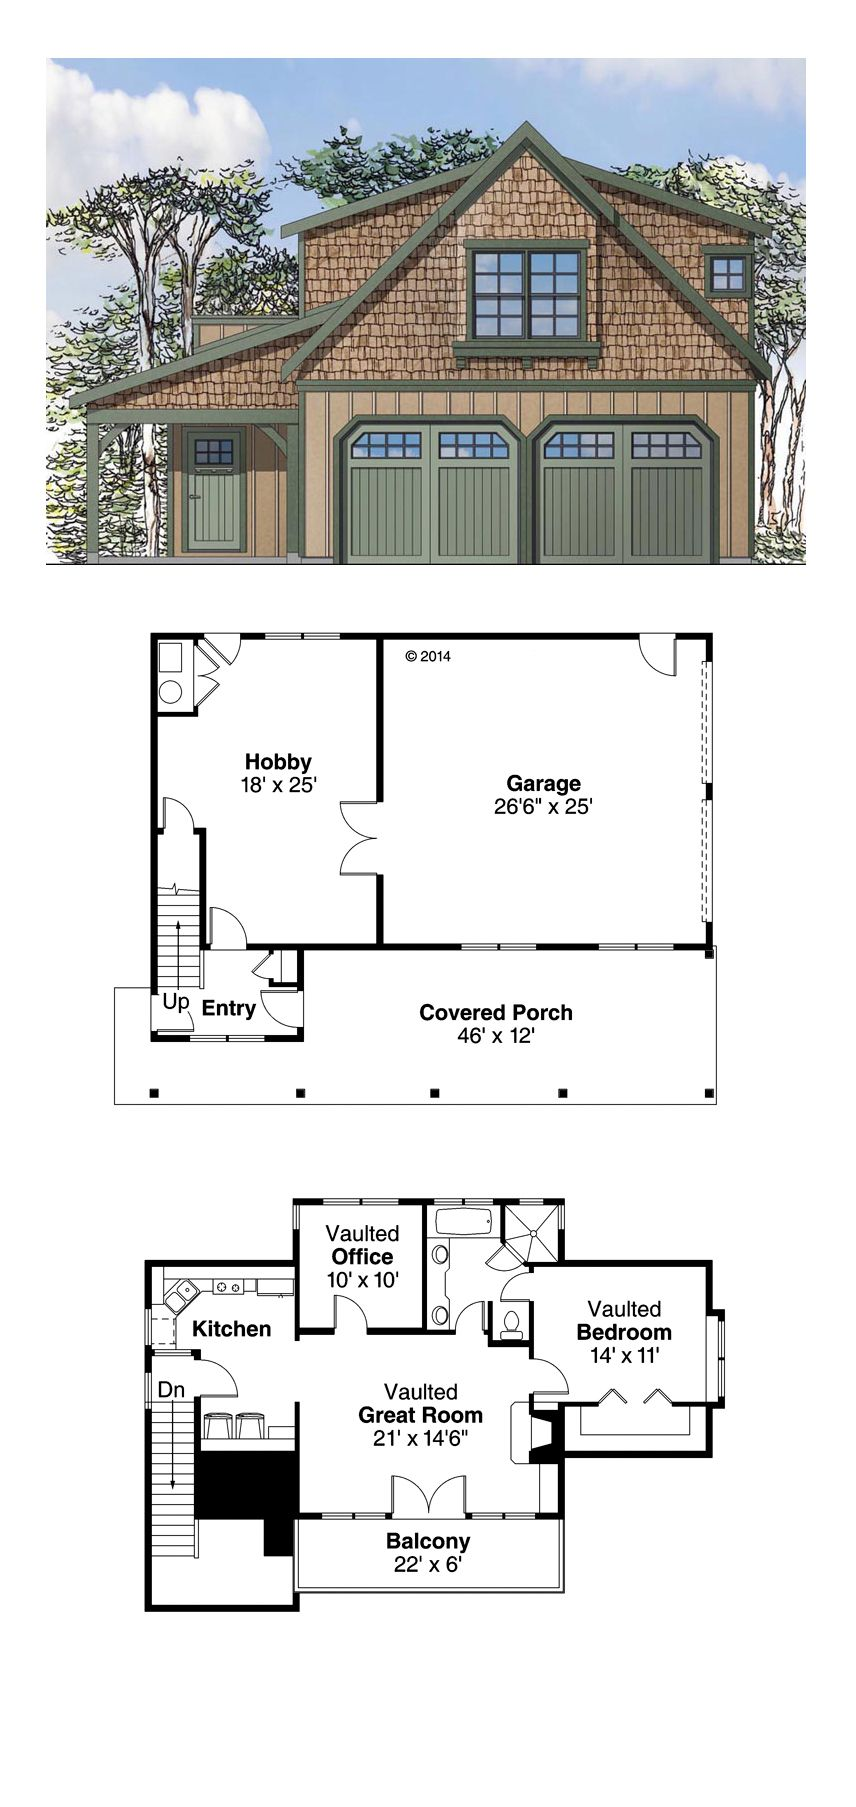 Garage apartment plan 41153 total living area 946 sq for 1 bedroom garage apartment